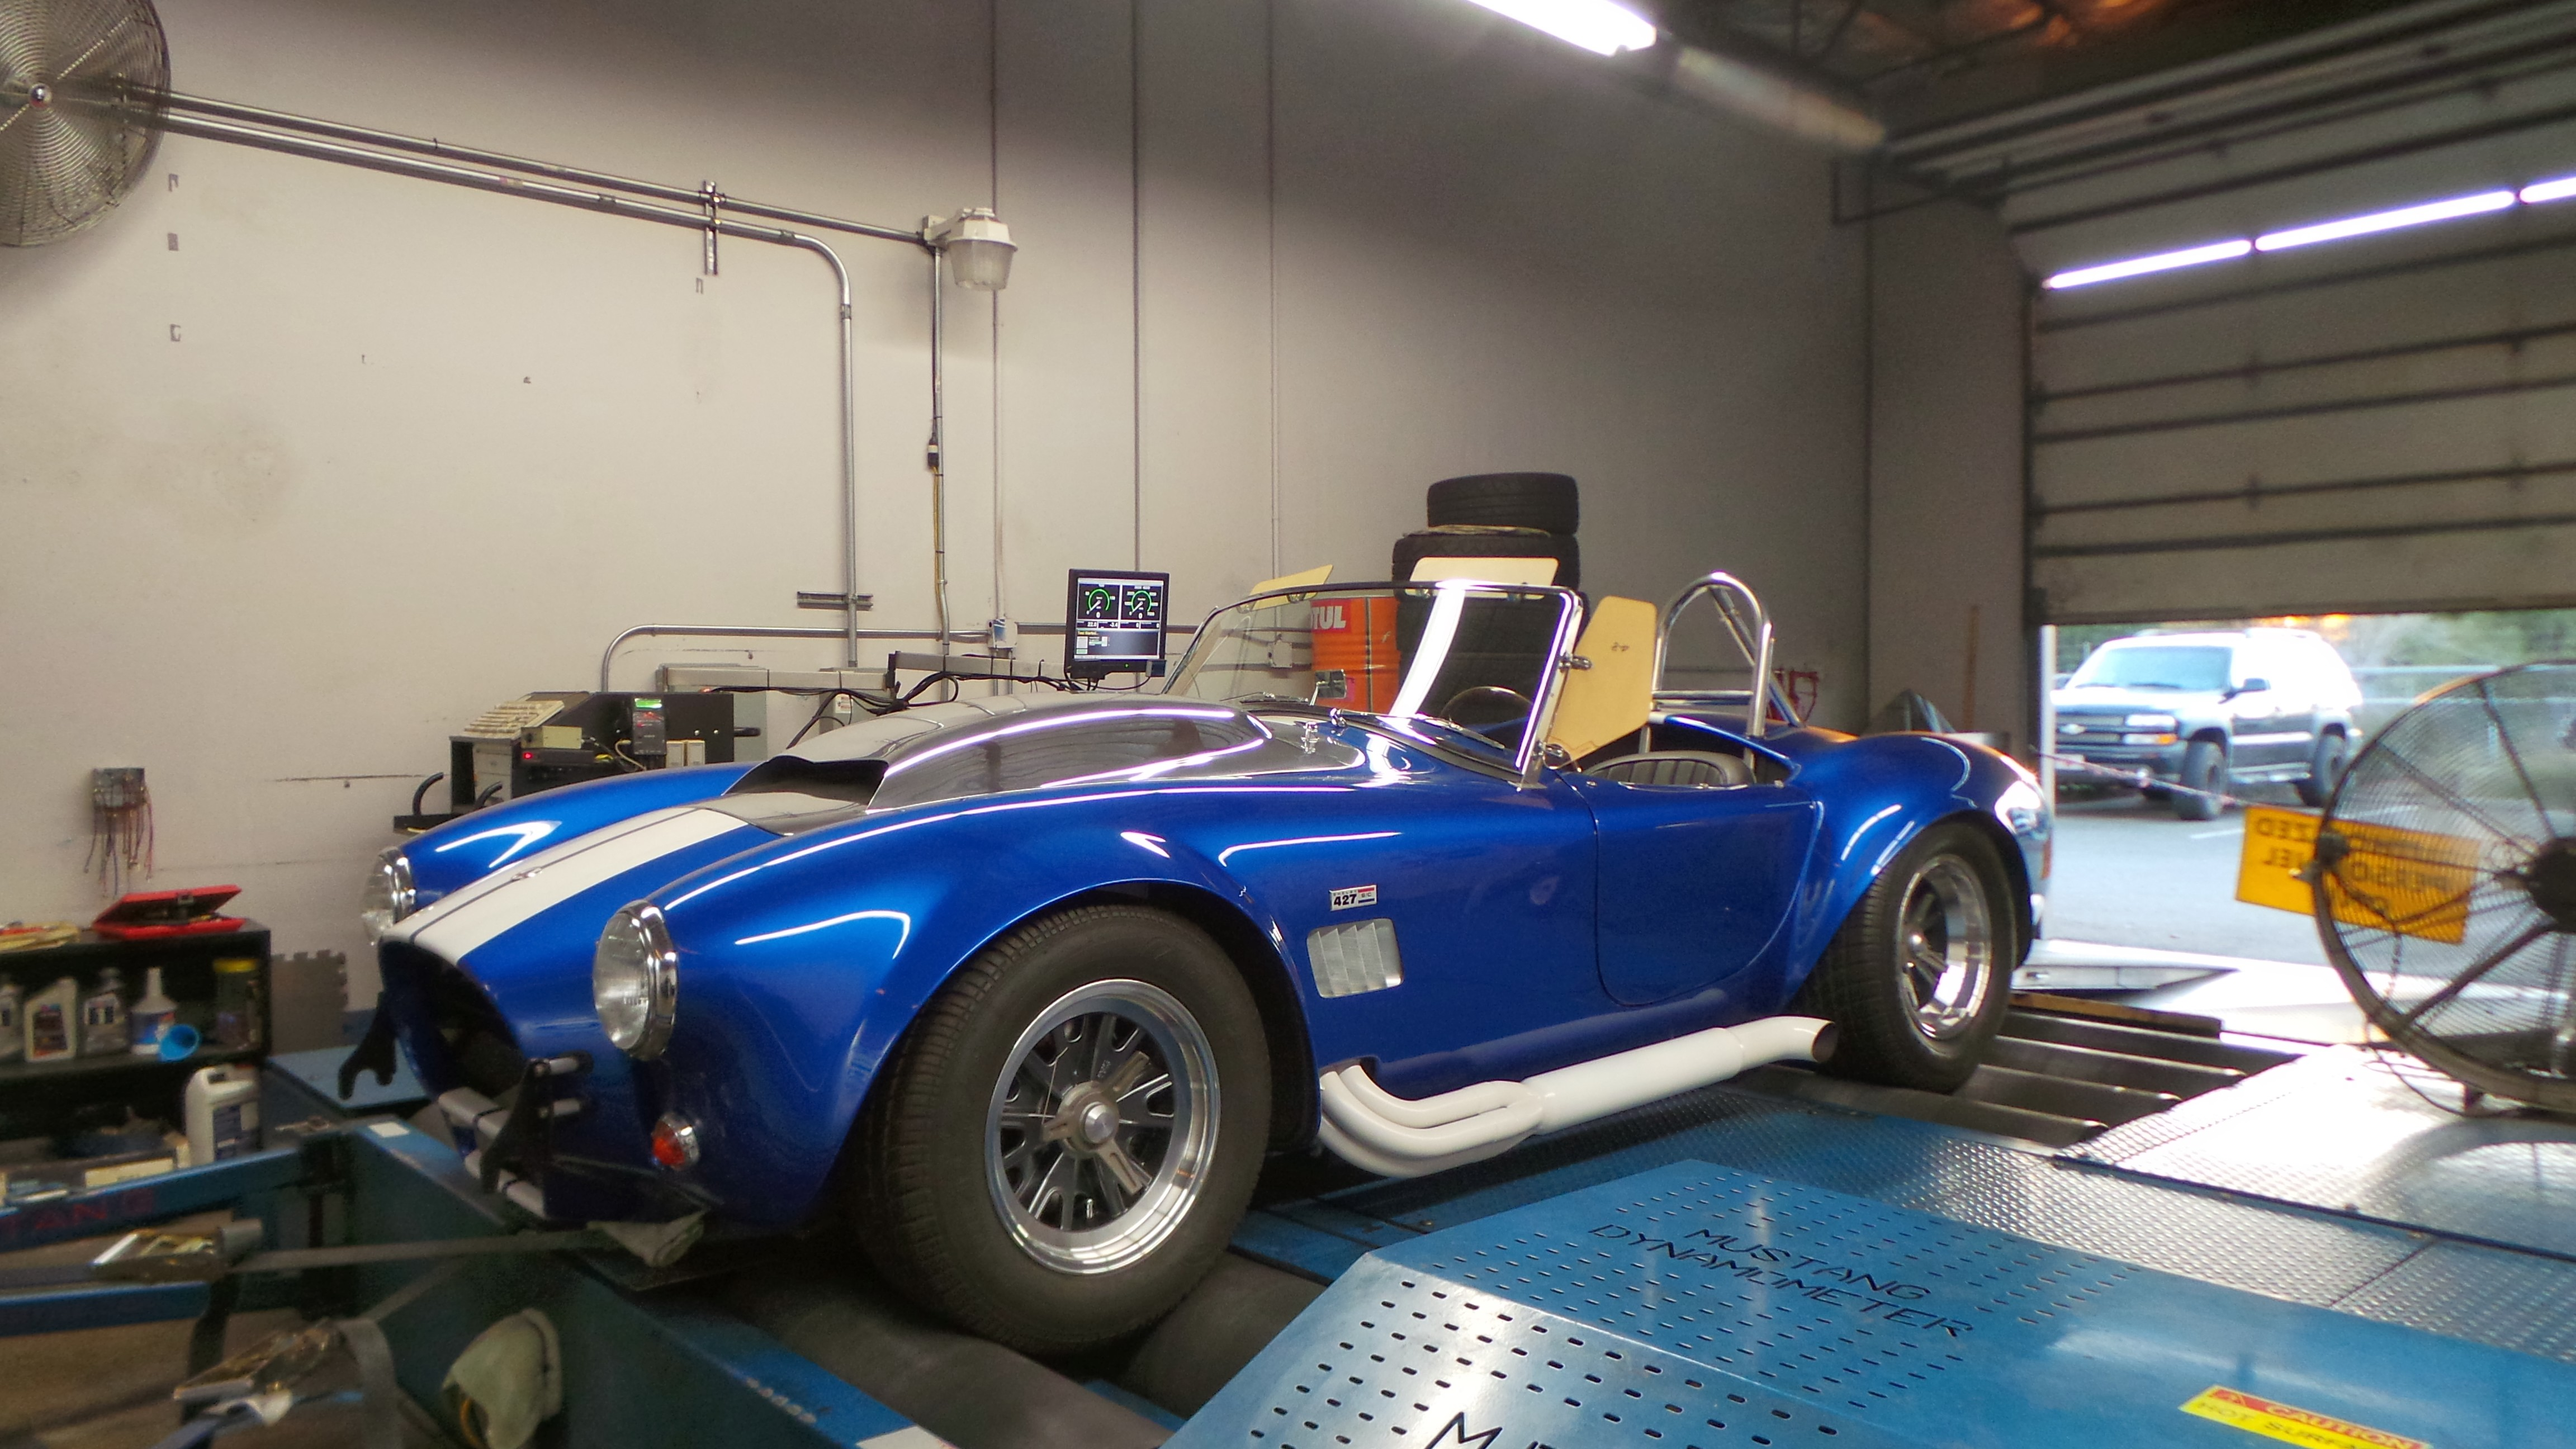 Fineline Imports Fine Line Imports Latest Blog Entries